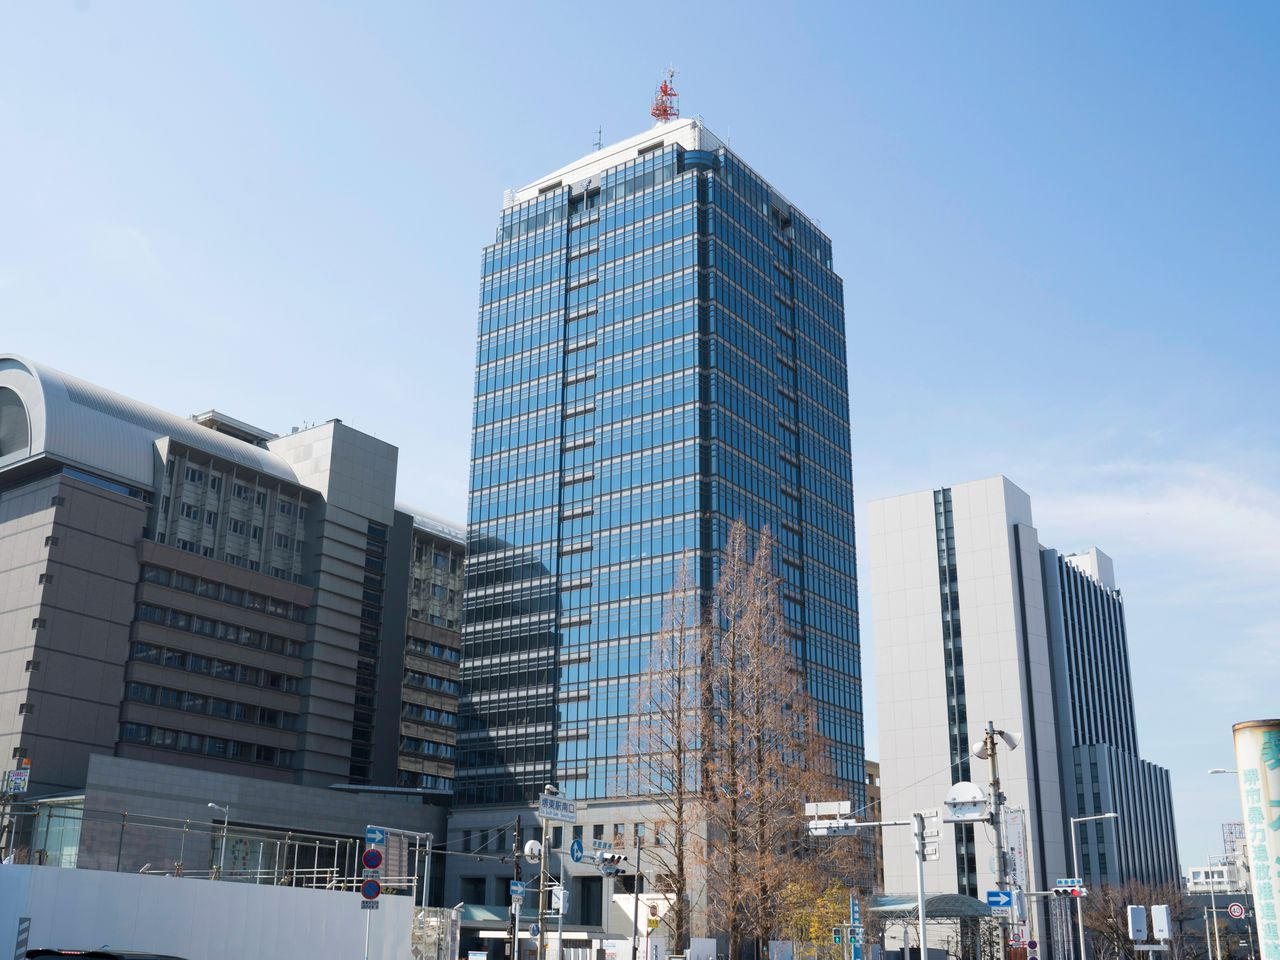 The Sakai City Hall tower is easy to spot and offers a free observation deck on its top floor.